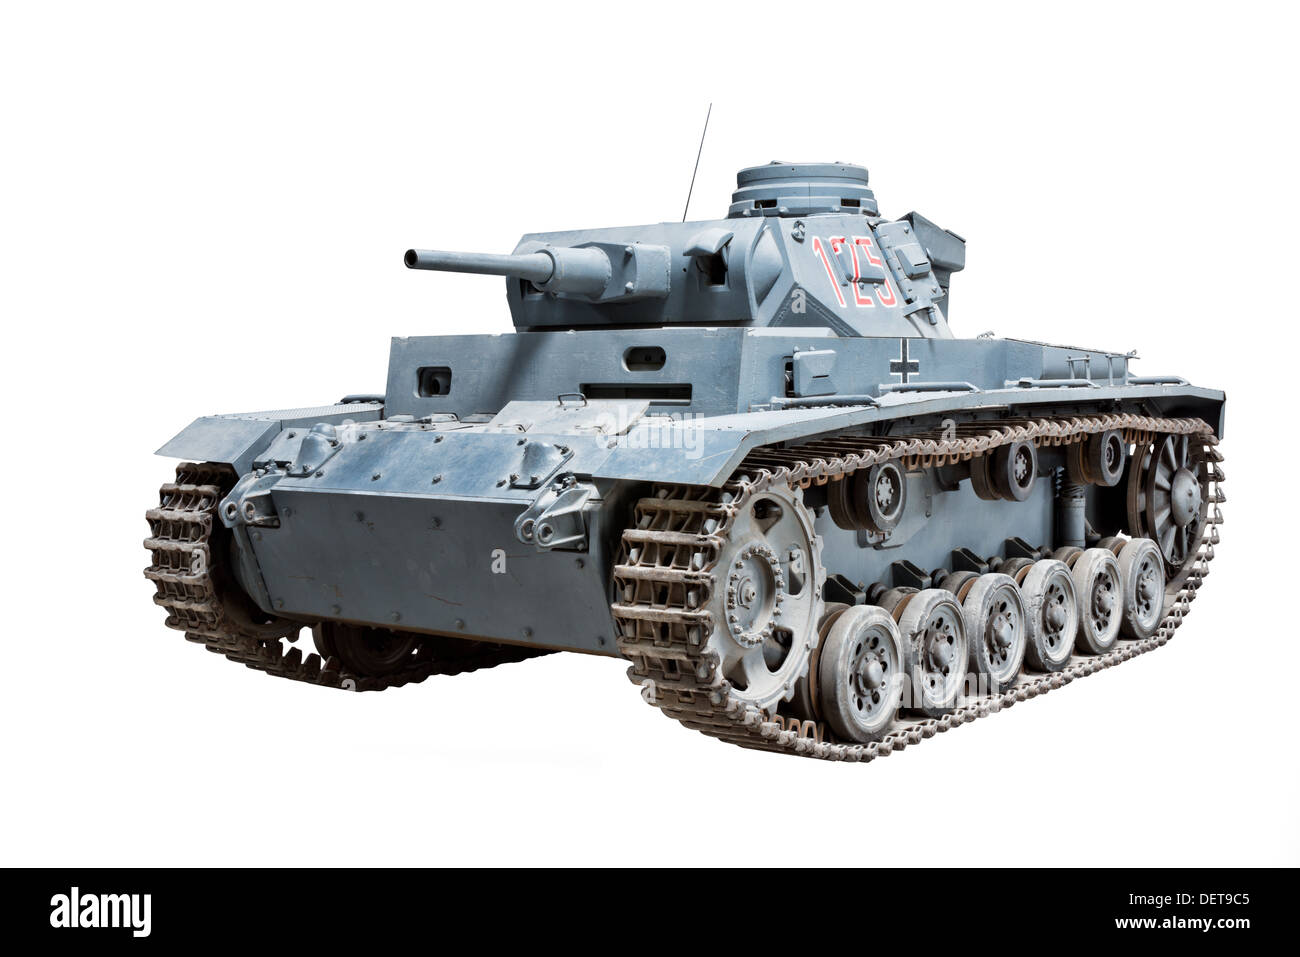 A Panzer, PzKw III (Sd.Kfz.141) medium tank used by Nazi German forces during WW2 - Stock Image